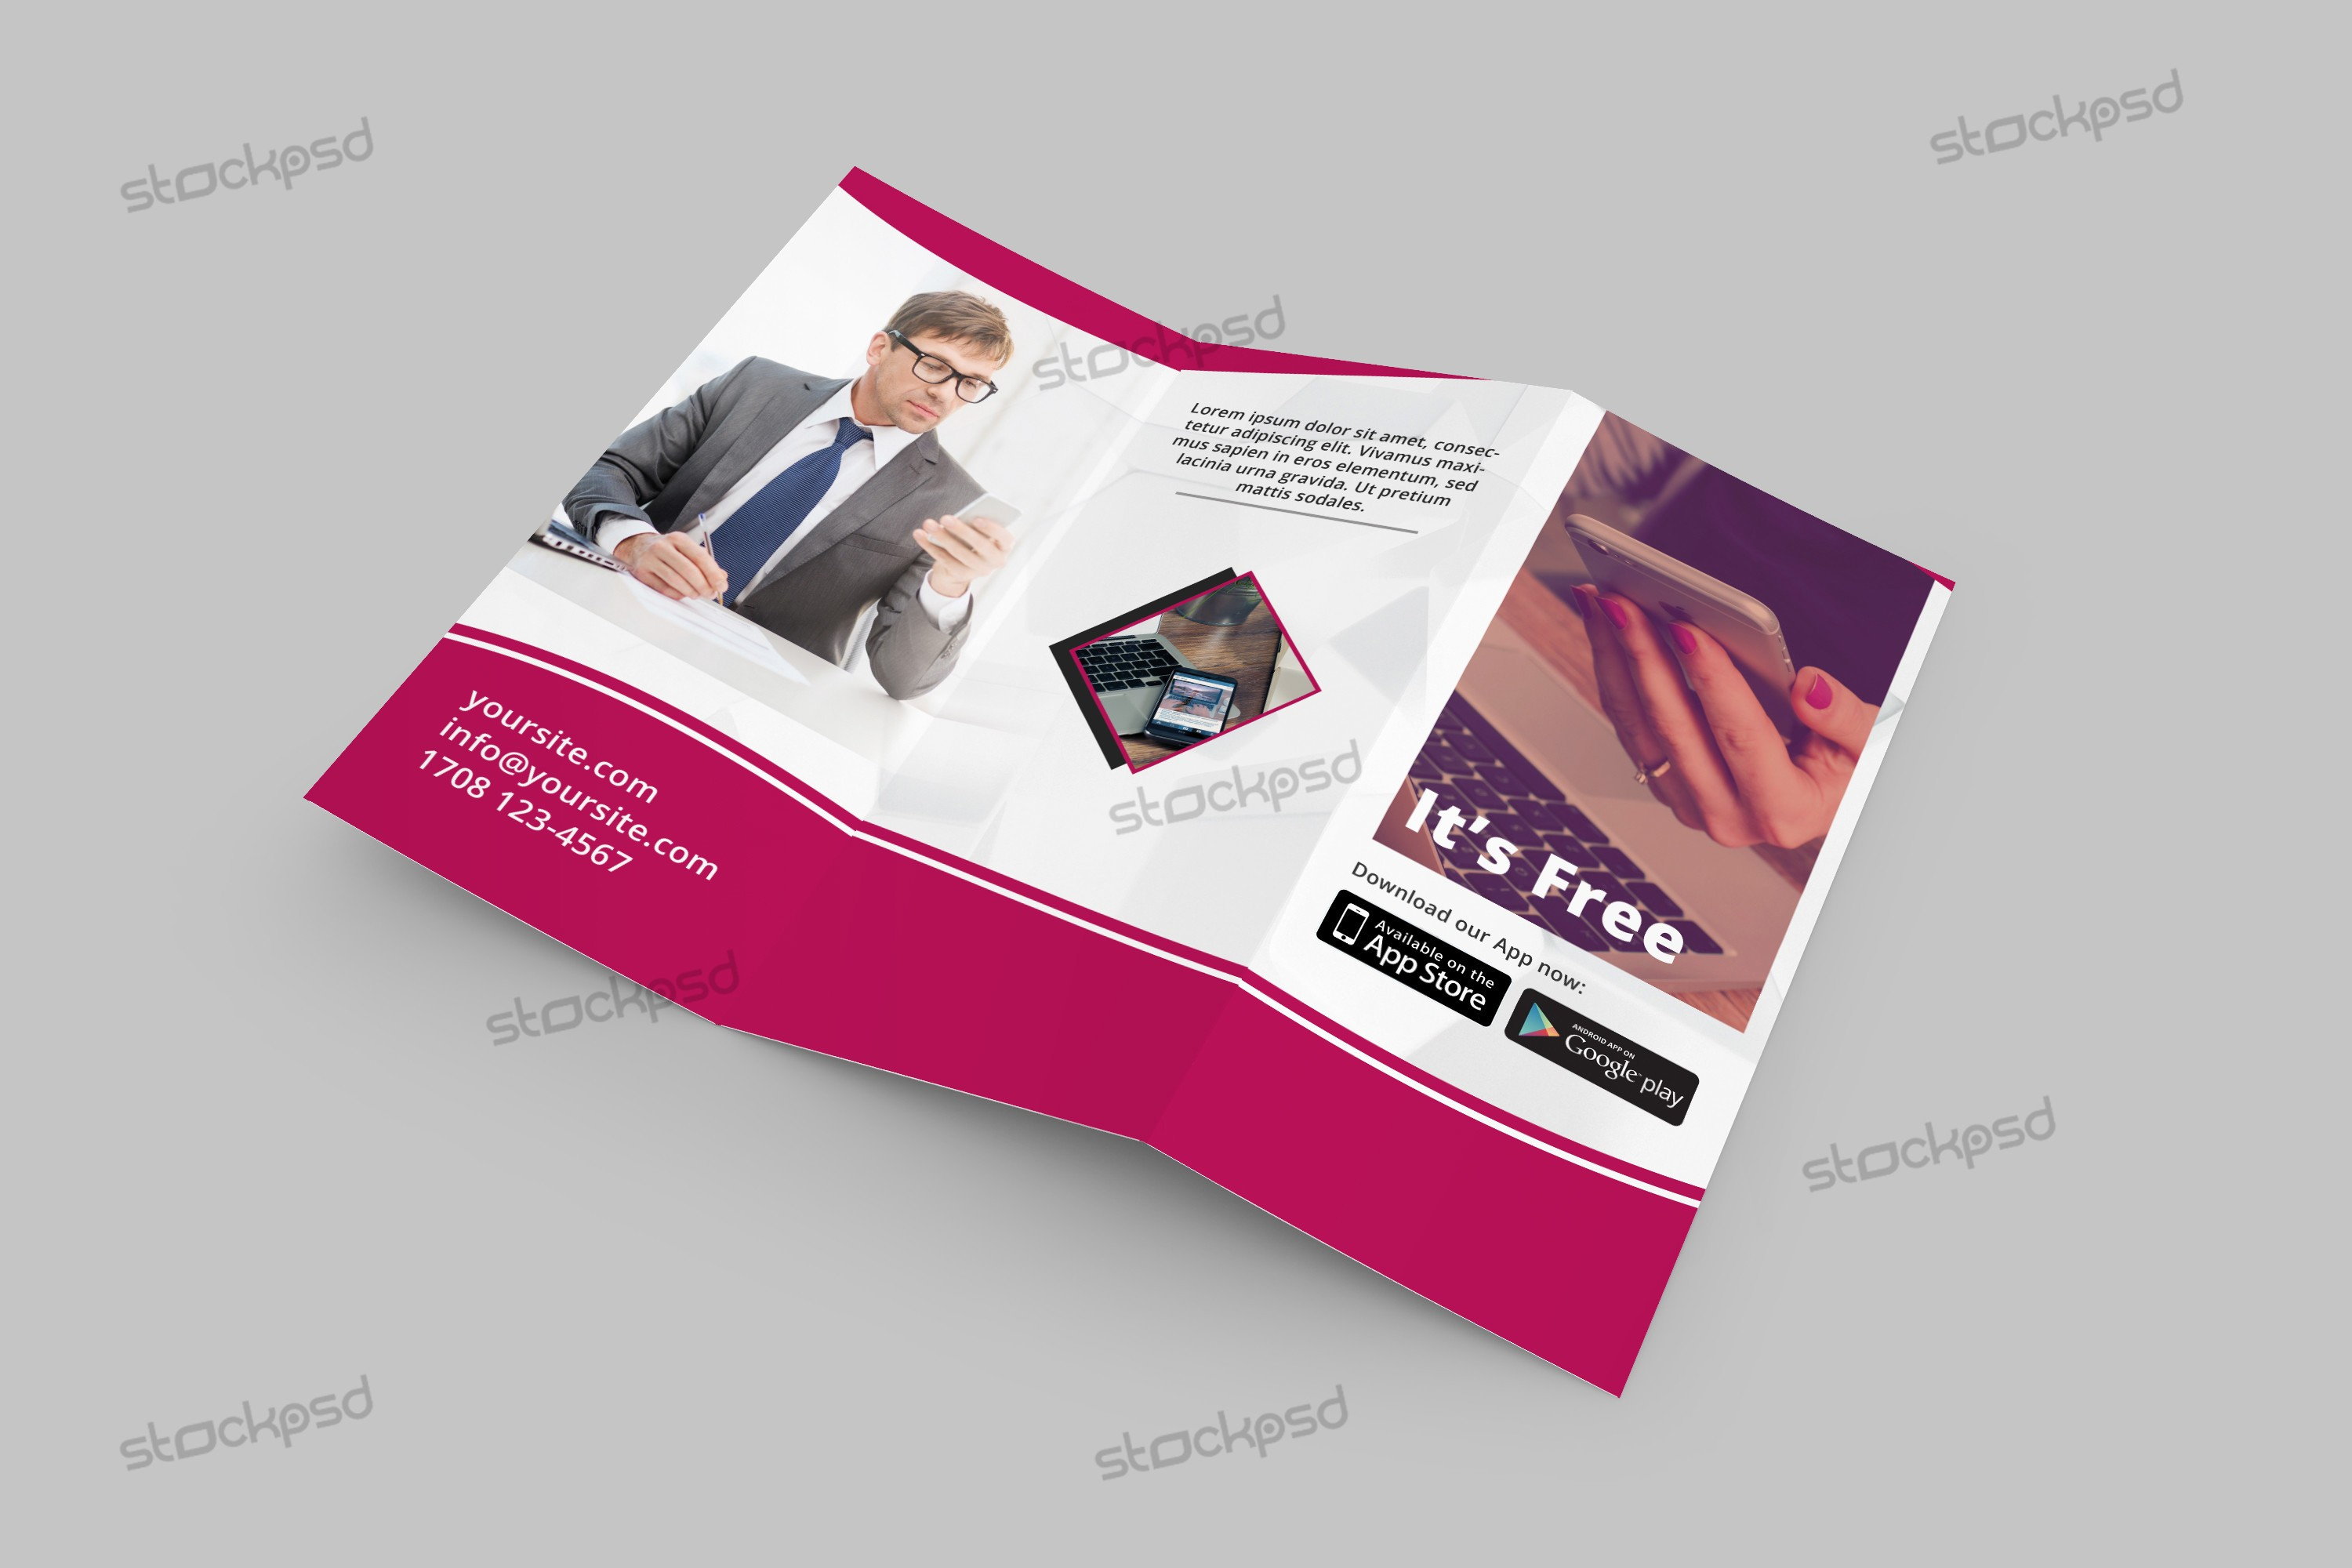 Business Corporate Free TriFold Brochure PSD Template Stockpsd - Tri fold brochure psd template